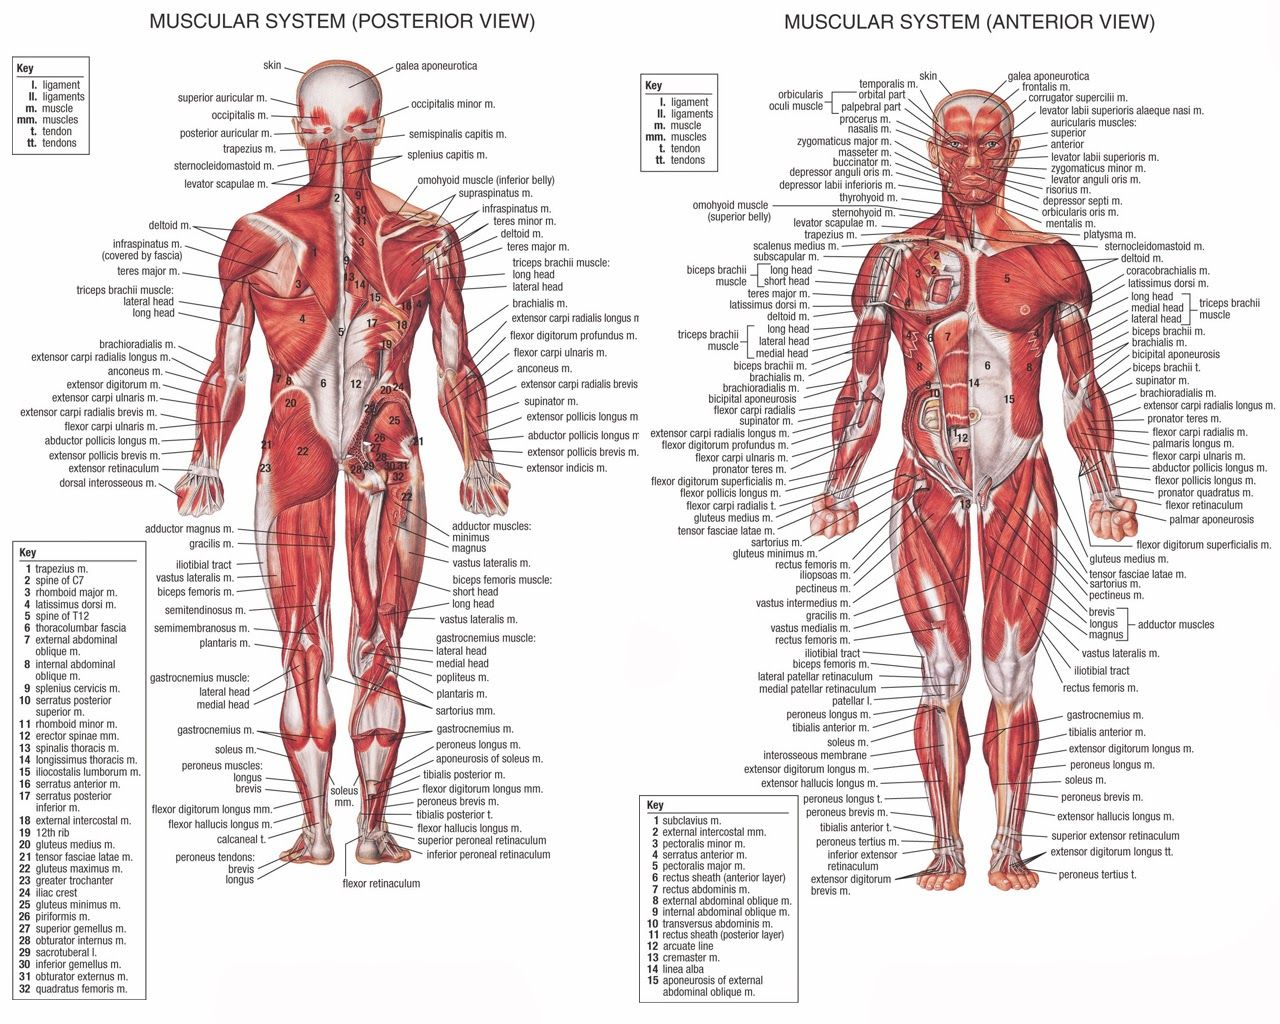 anatomy | anatomy of the human body muscles | anatomy picture, Muscles